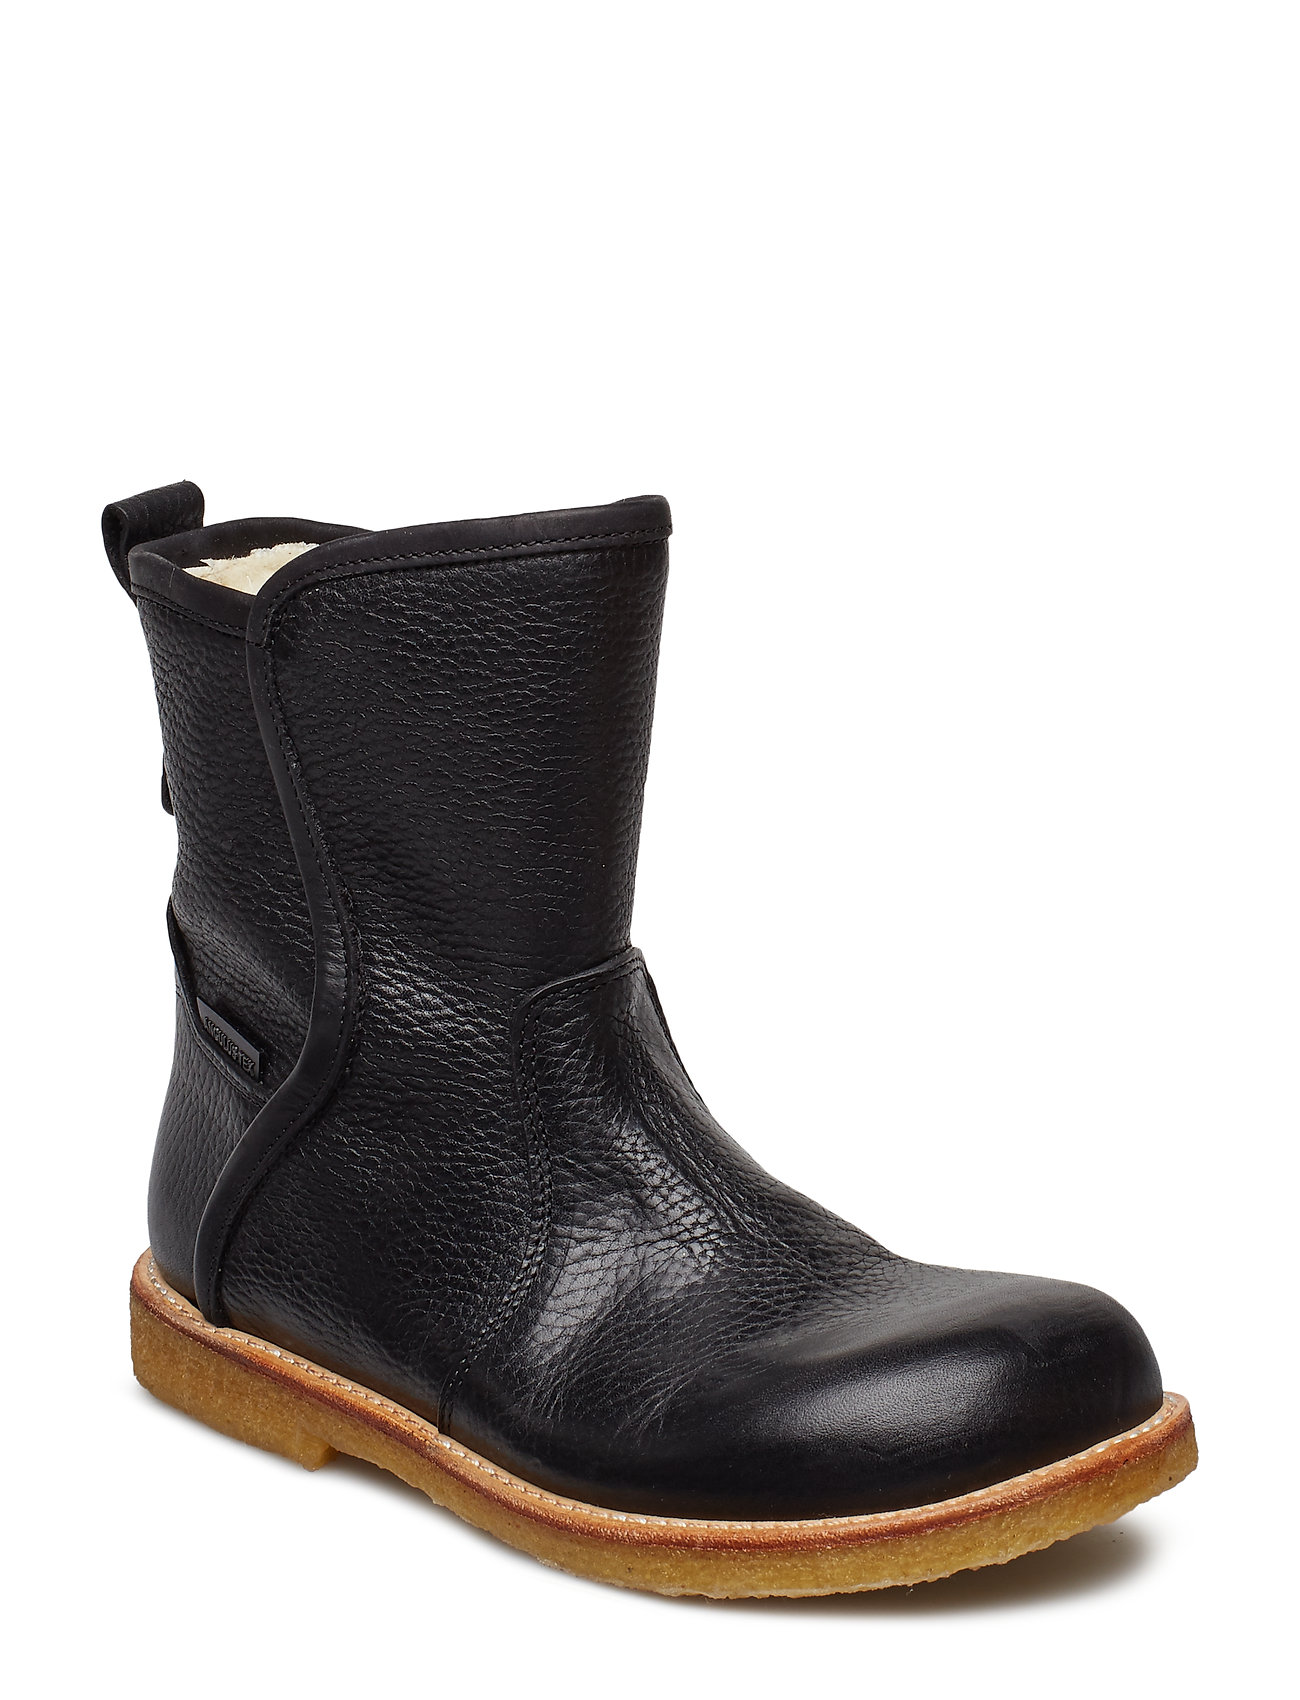 ANGULUS Boots - flat - with zipper